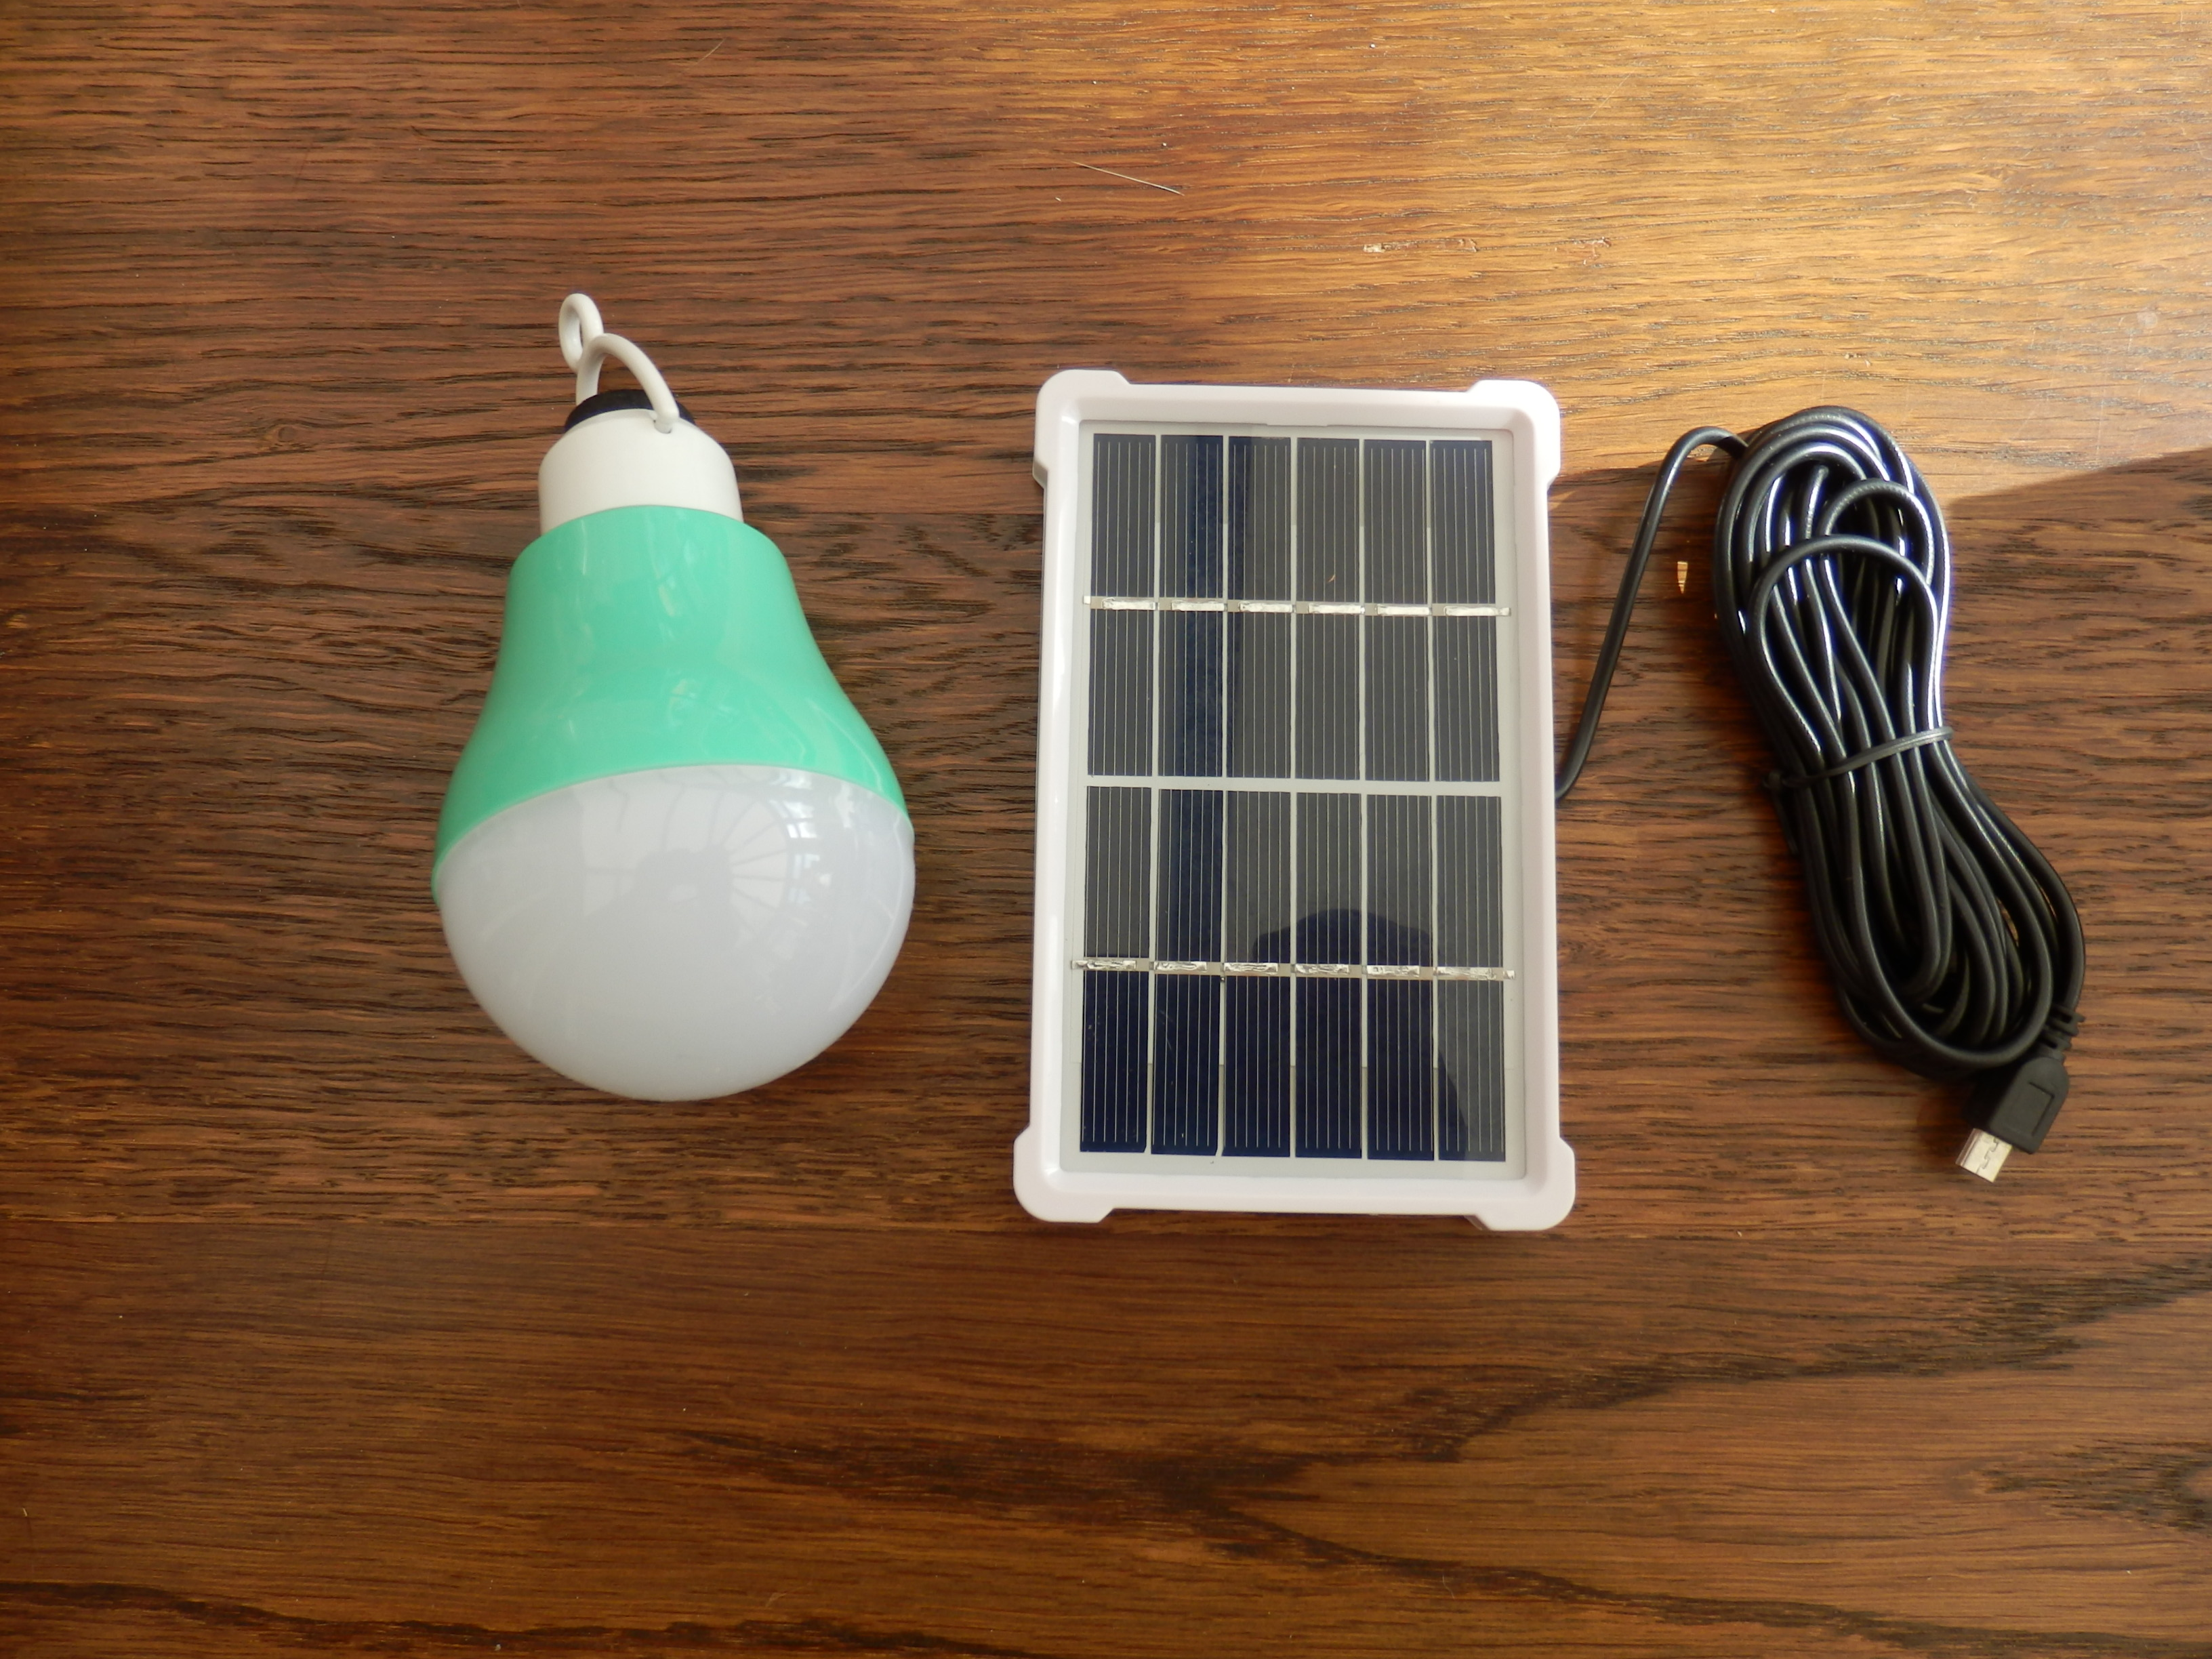 Rechargeable Portable LED Light Bulb Powered by a Solar Panel by BFCY